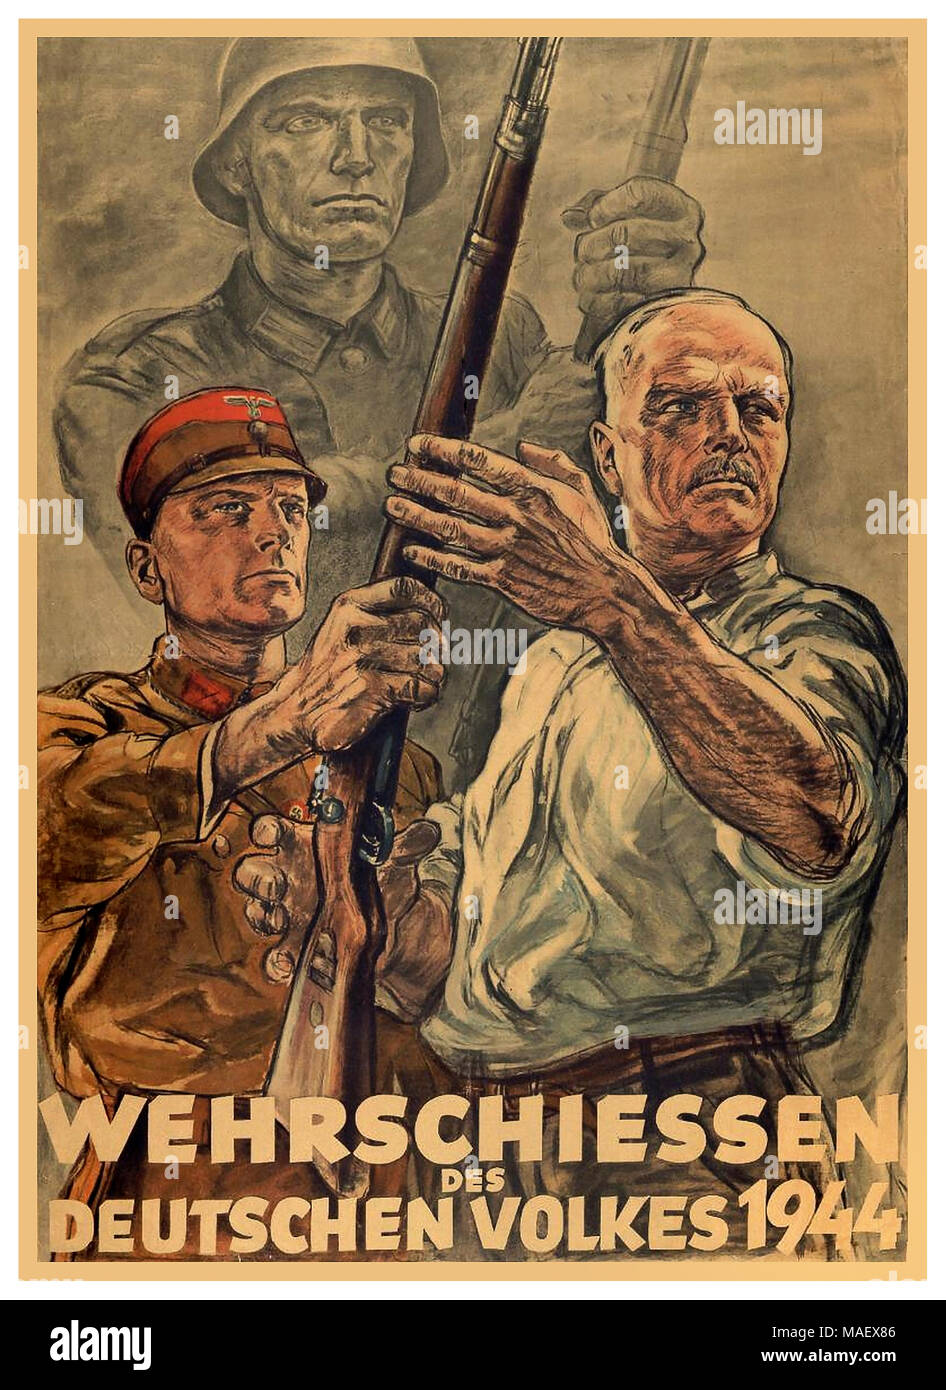 1940's Vintage  WW2 Nazi Propaganda Poster 1944 illustrating a mature civilian man being handed a rifle to do his part in defending the German people against imminent invasion - Stock Image